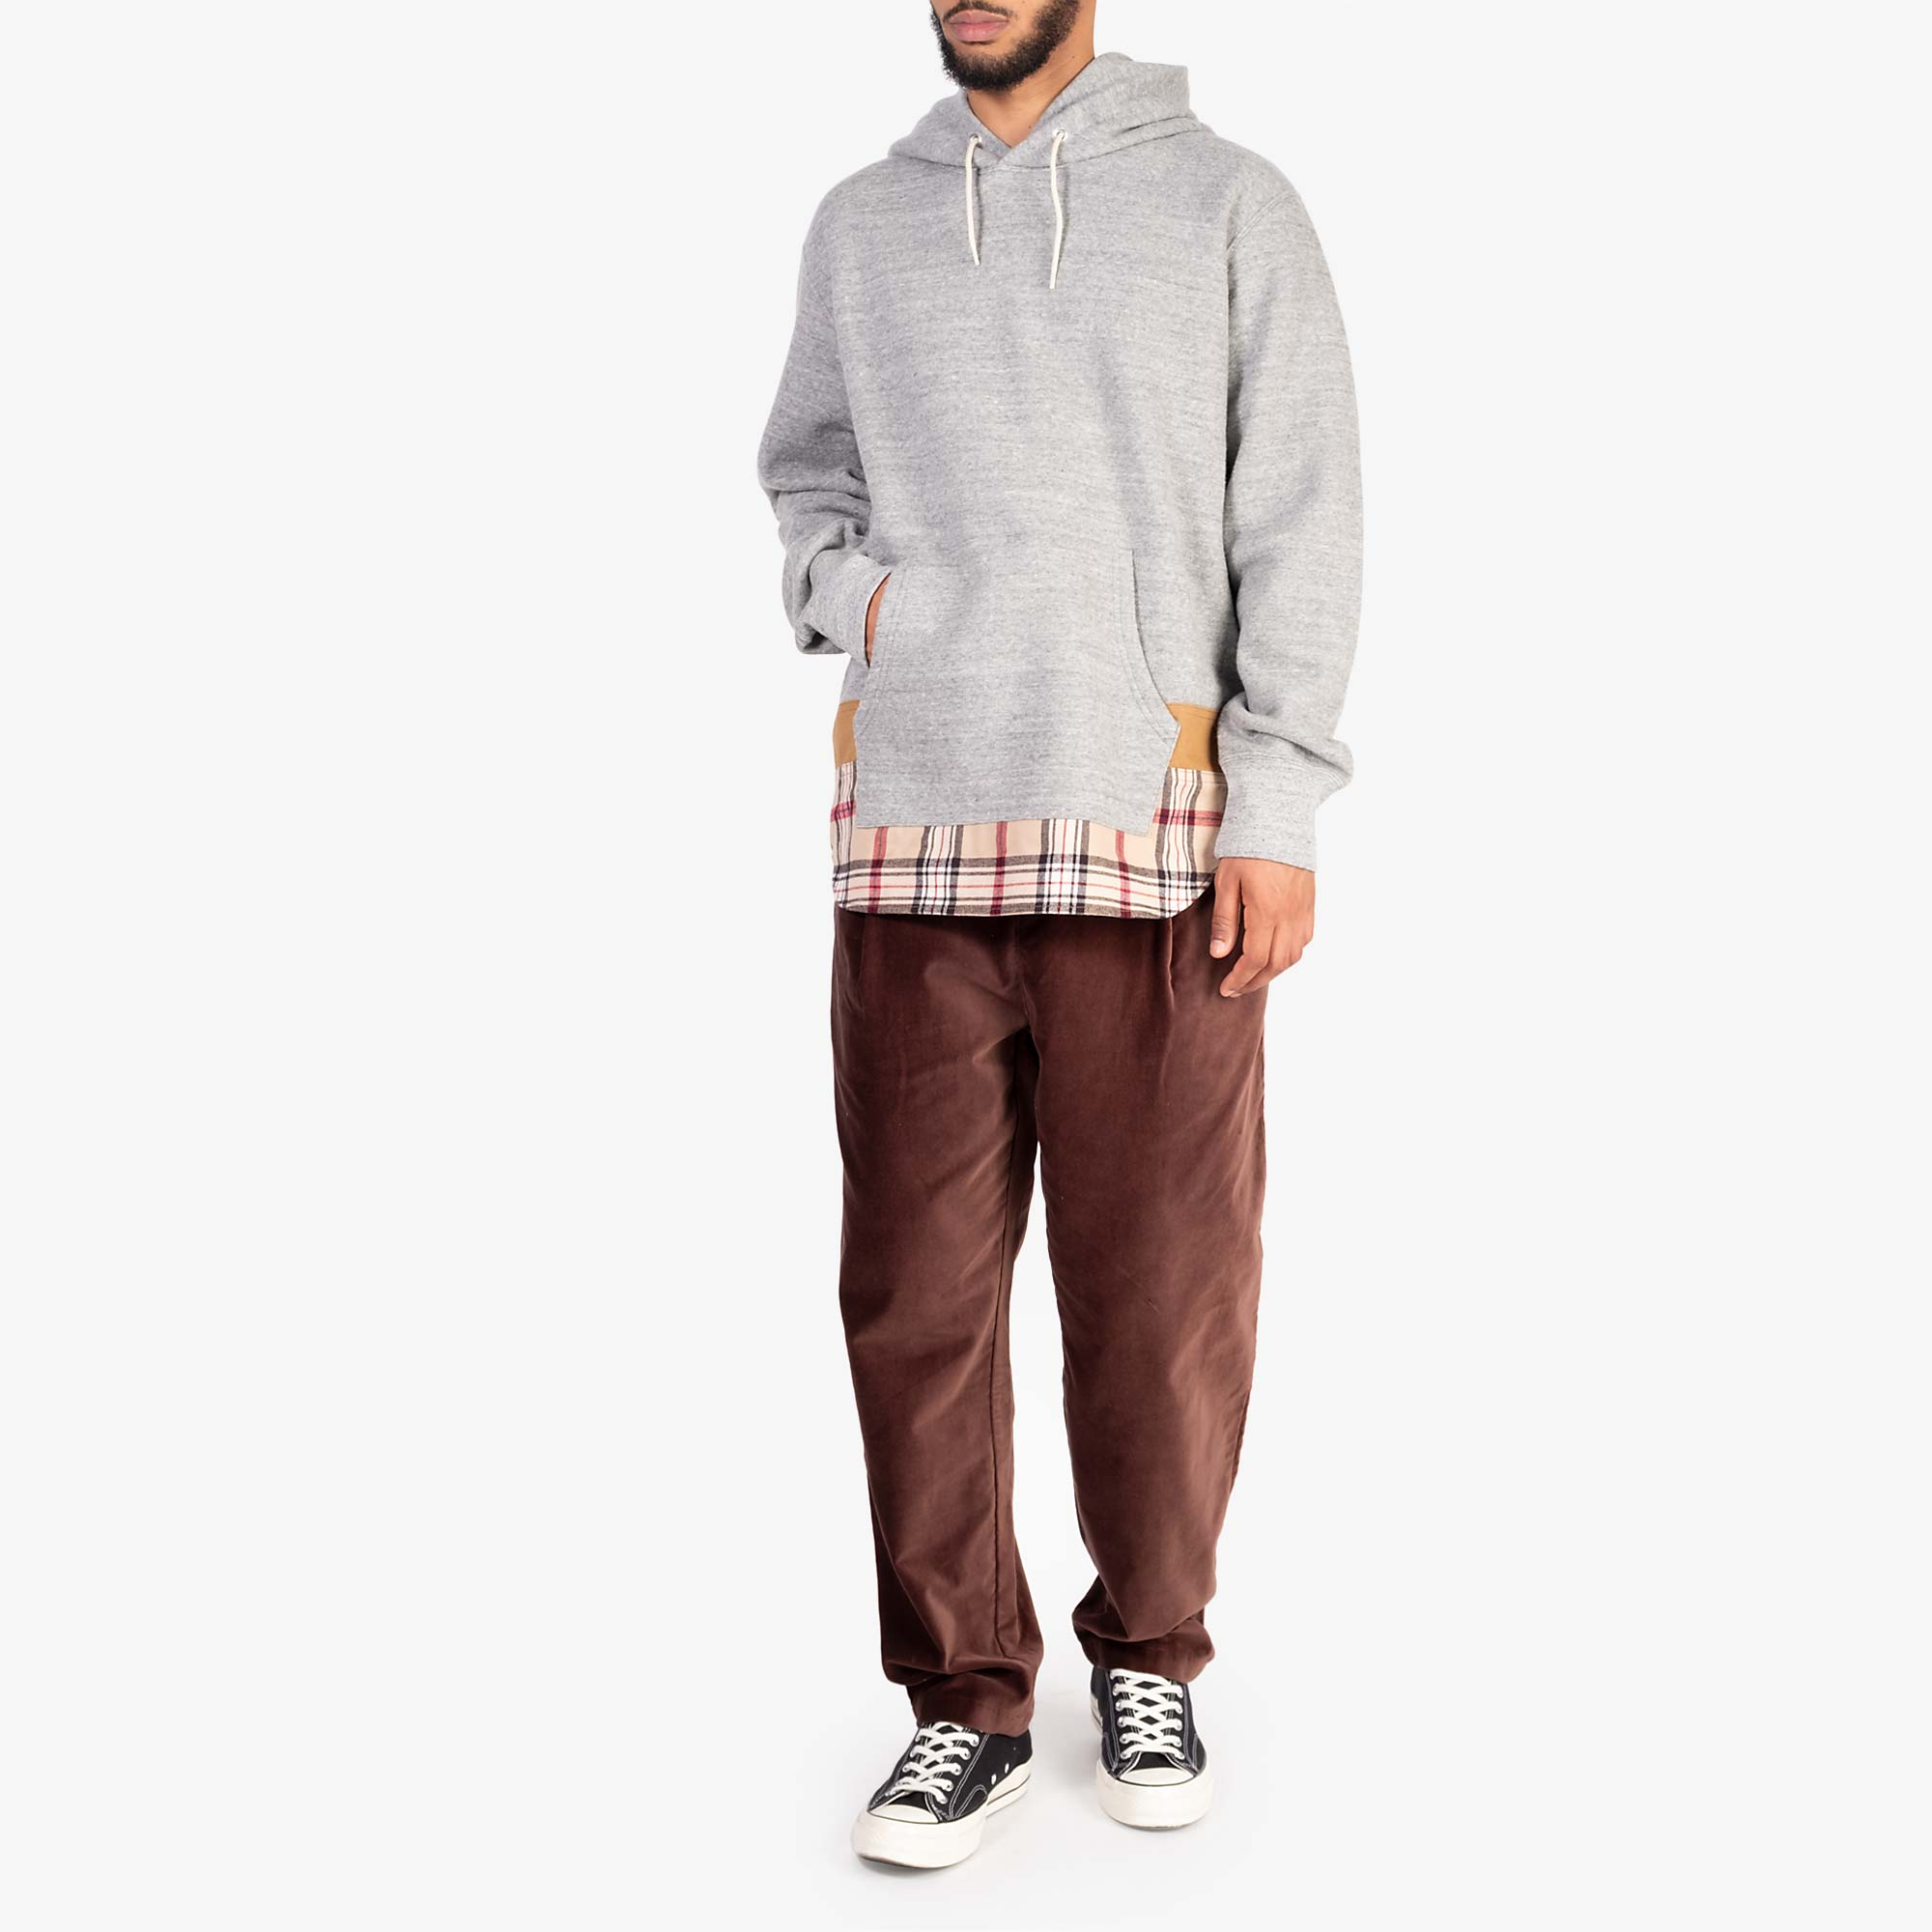 Comme des Garçons - Homme Checked Hem Pullover Hooded Sweat T004 - Grey / Multi 7